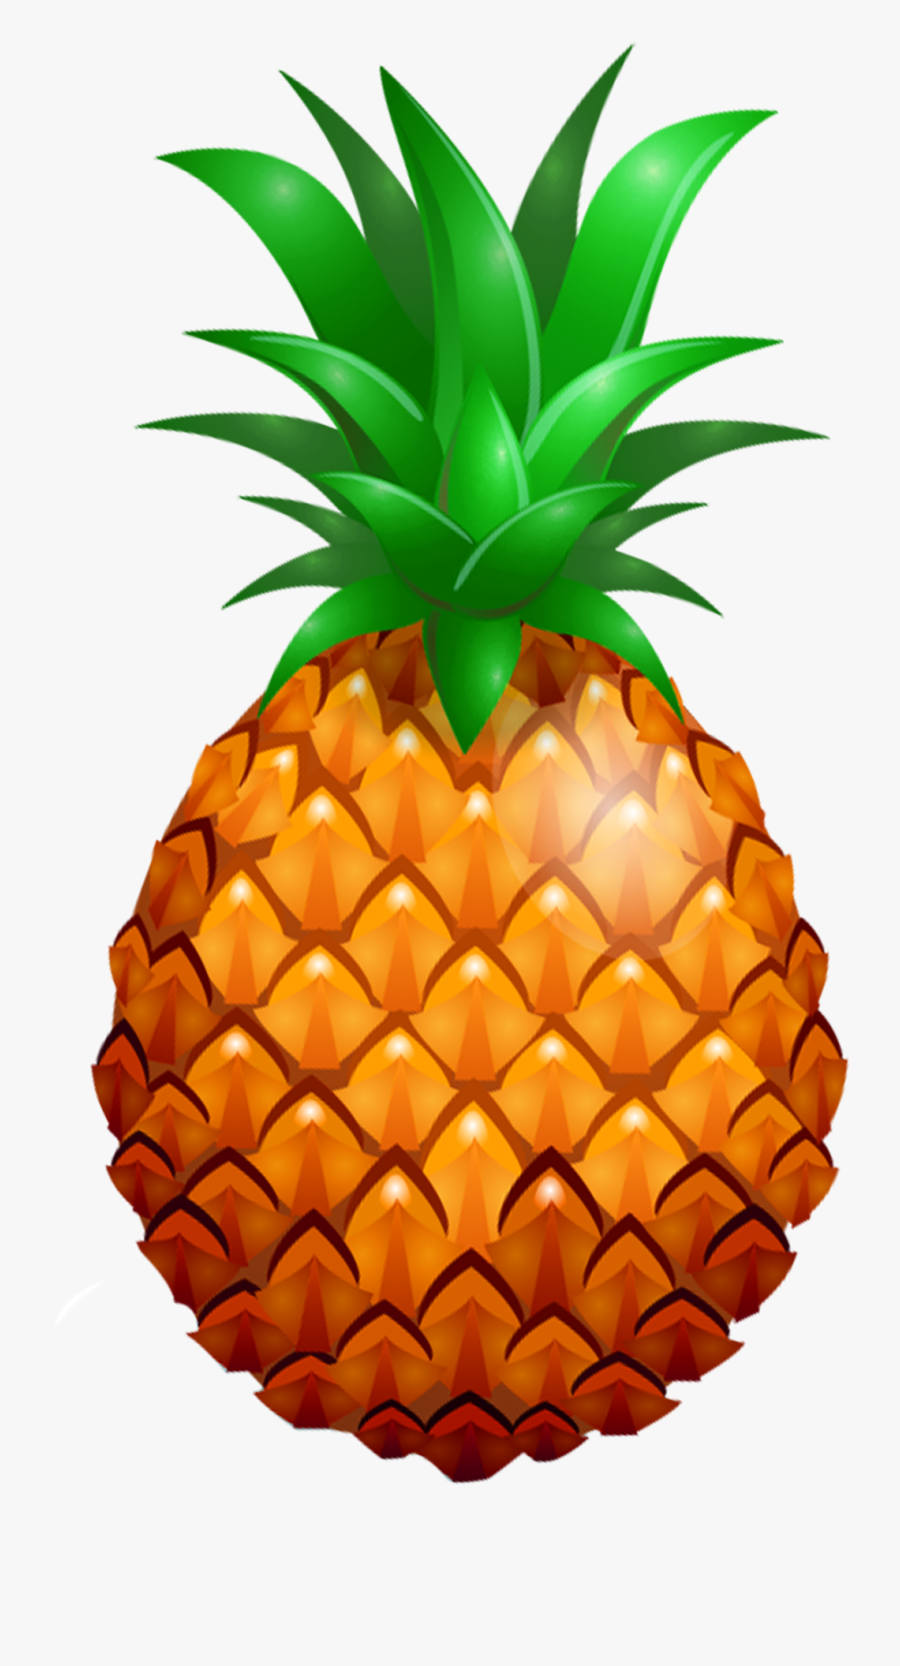 Pineapple Png - Pineapple Clipart Png, Transparent Clipart